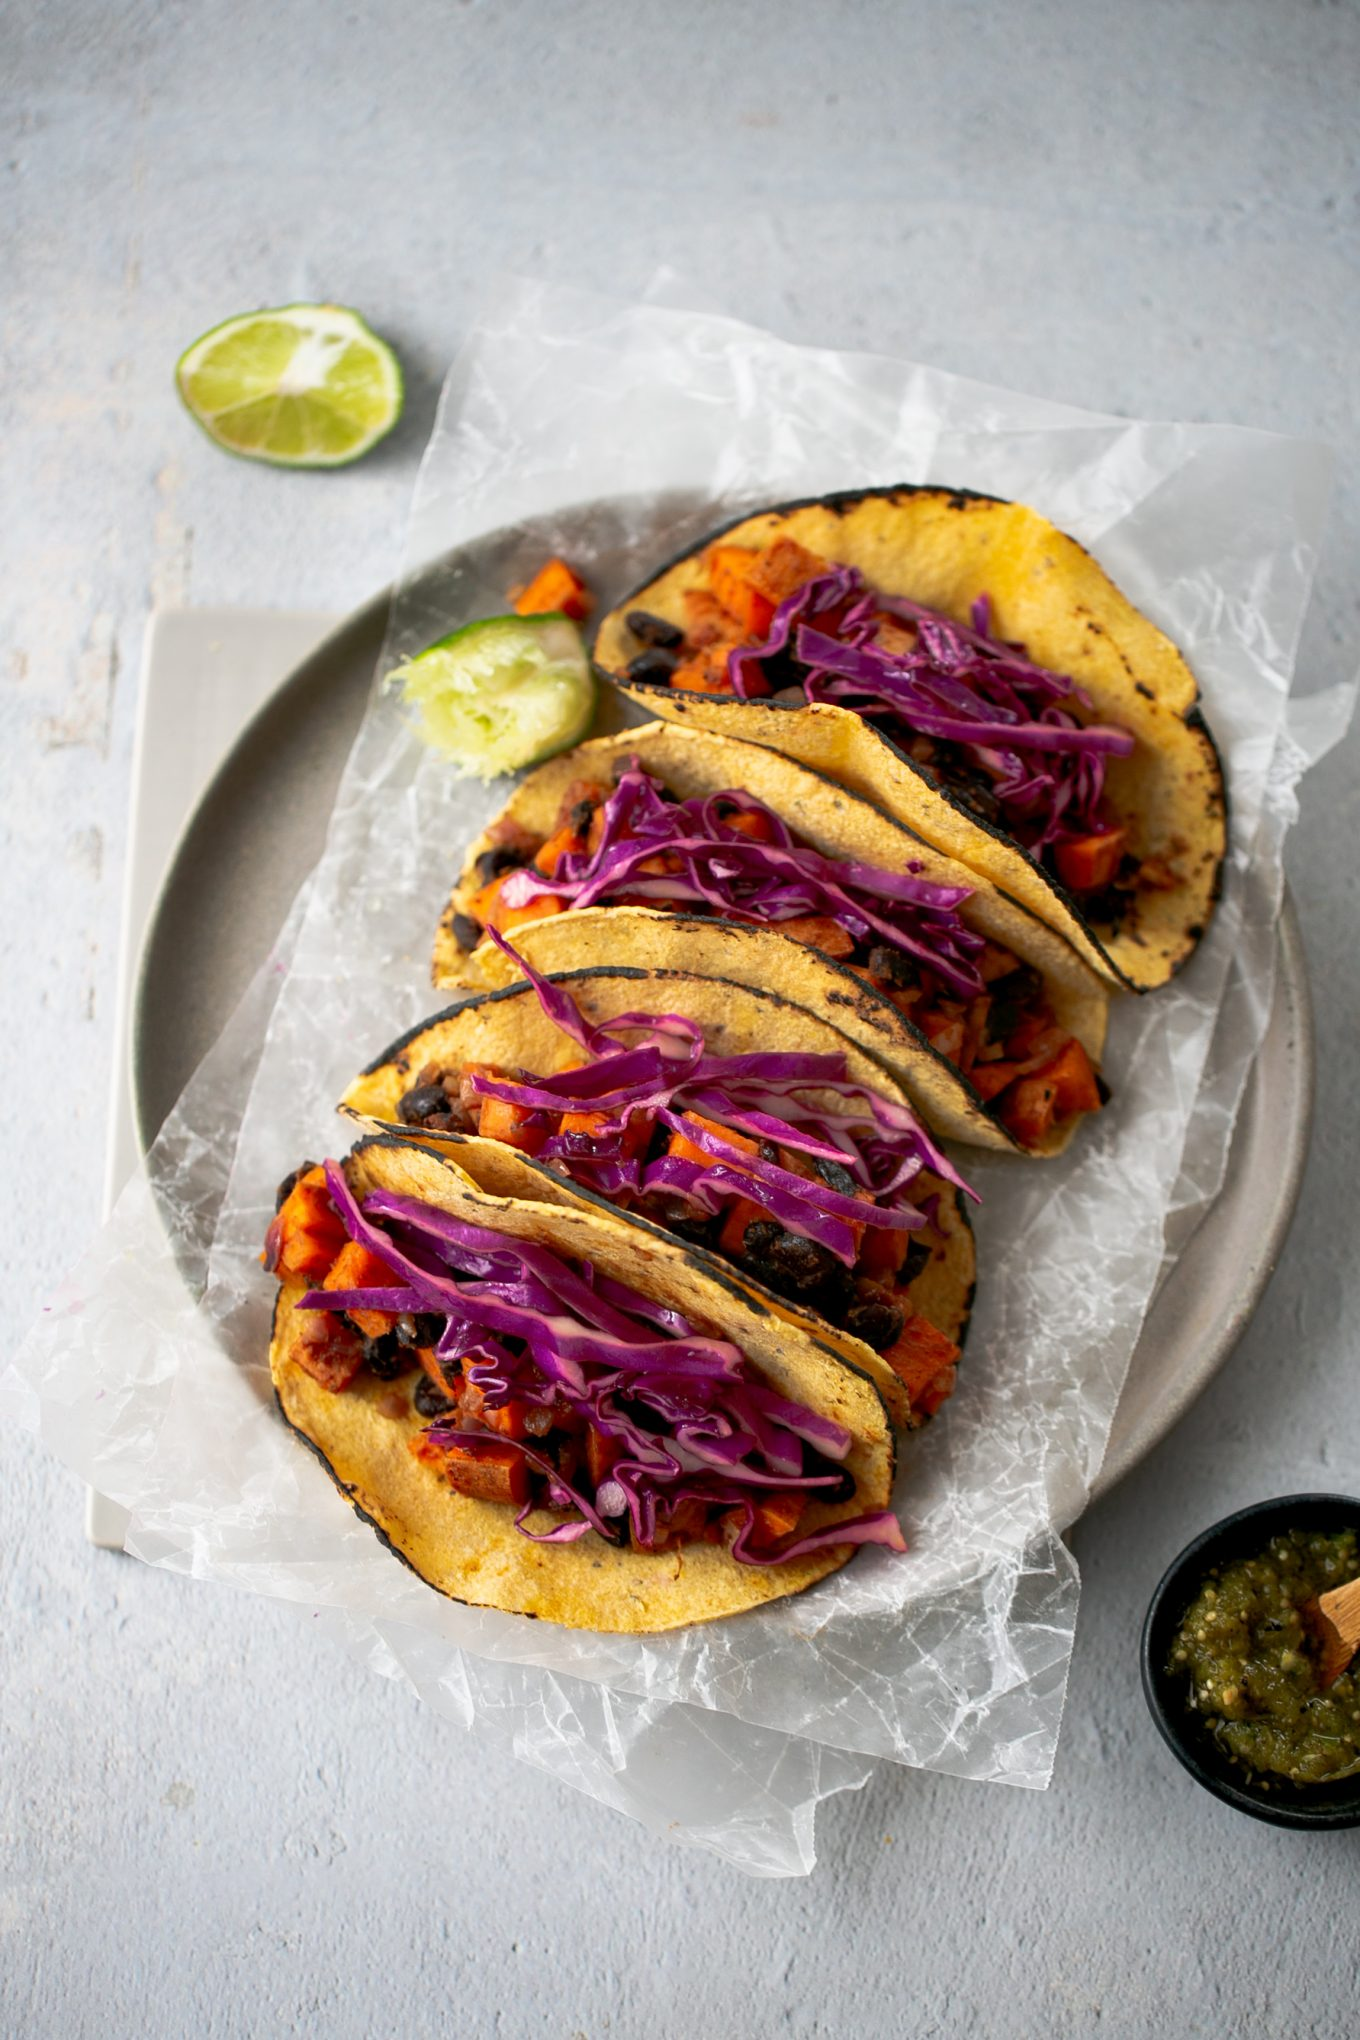 sweet potato and black beans tacos with red cabbage and salsa verde